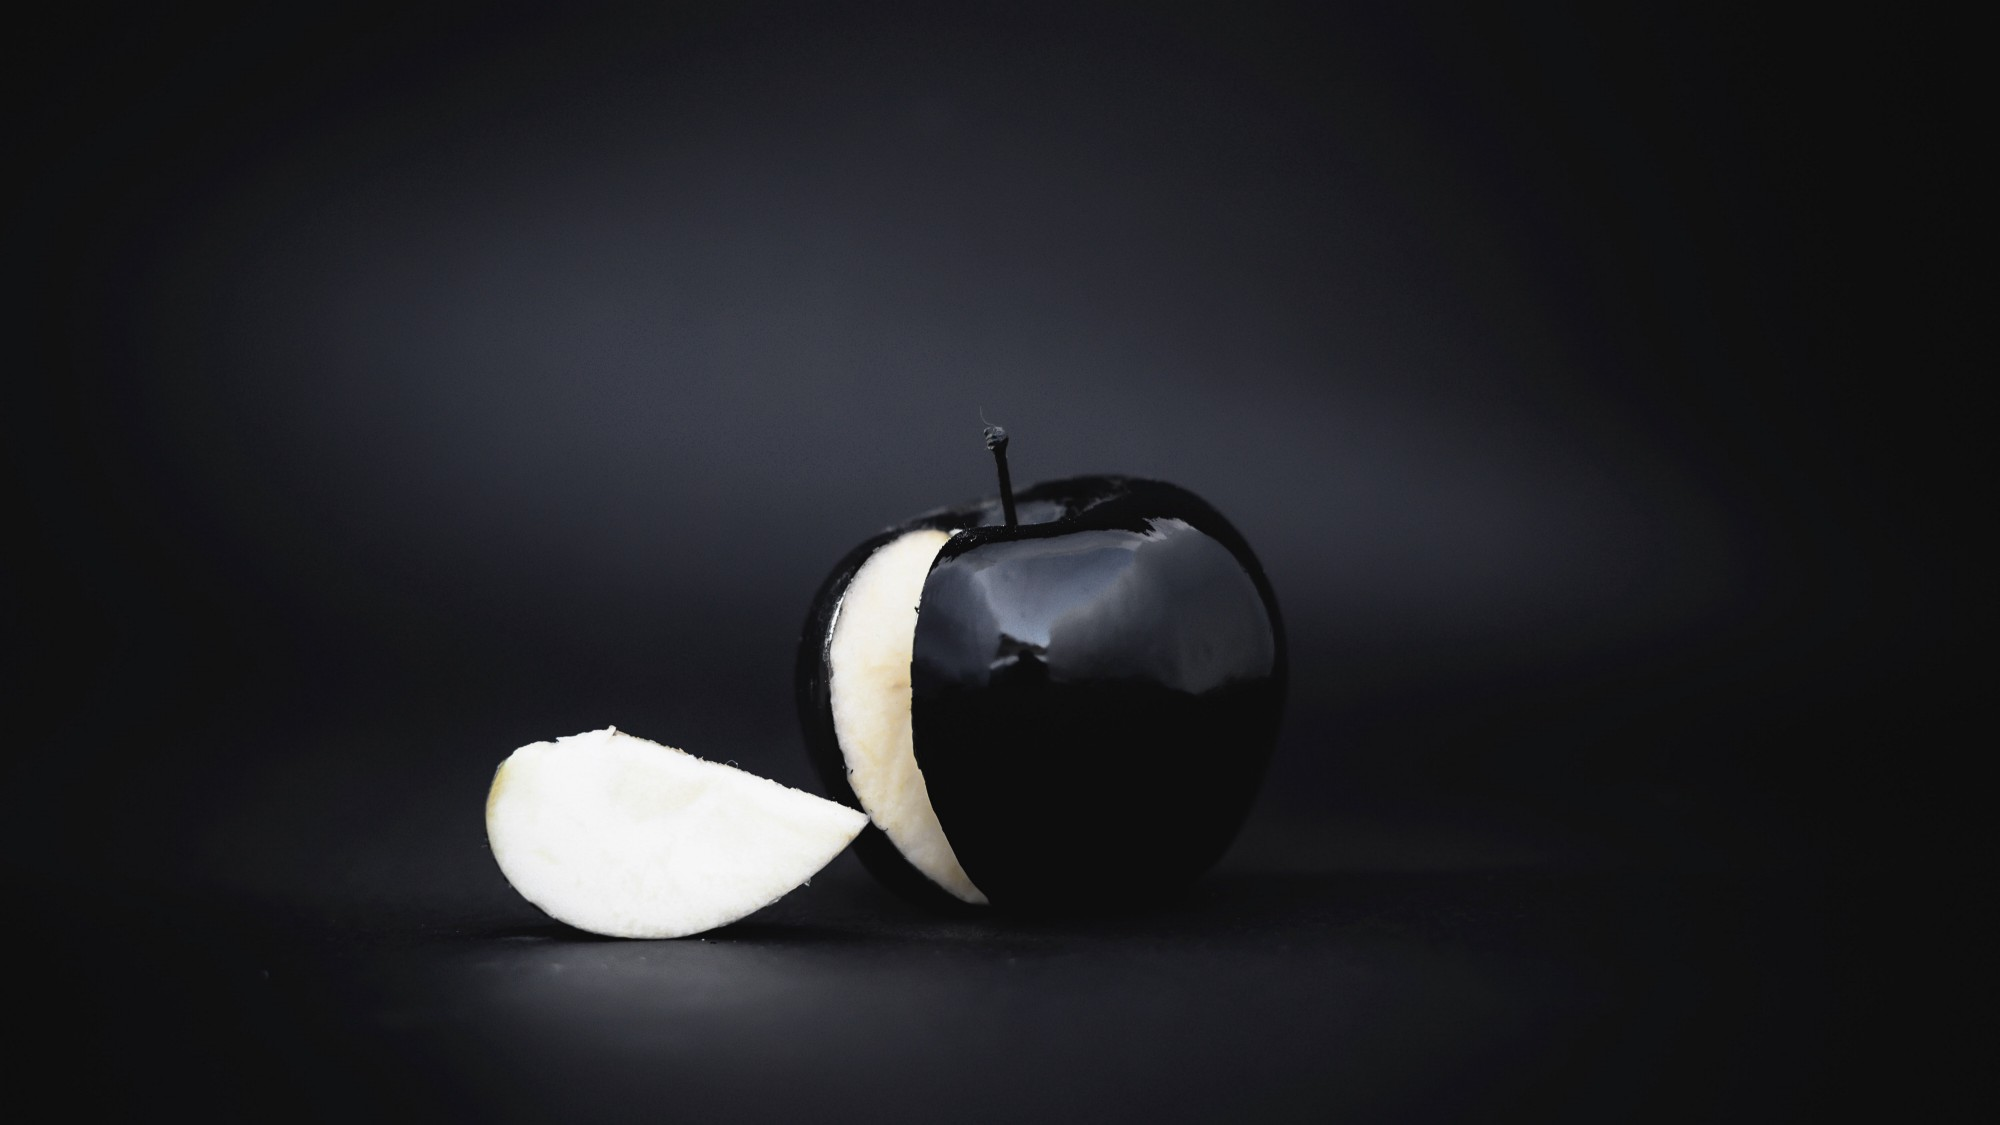 Black shadowed background with black apple and white slice cut out